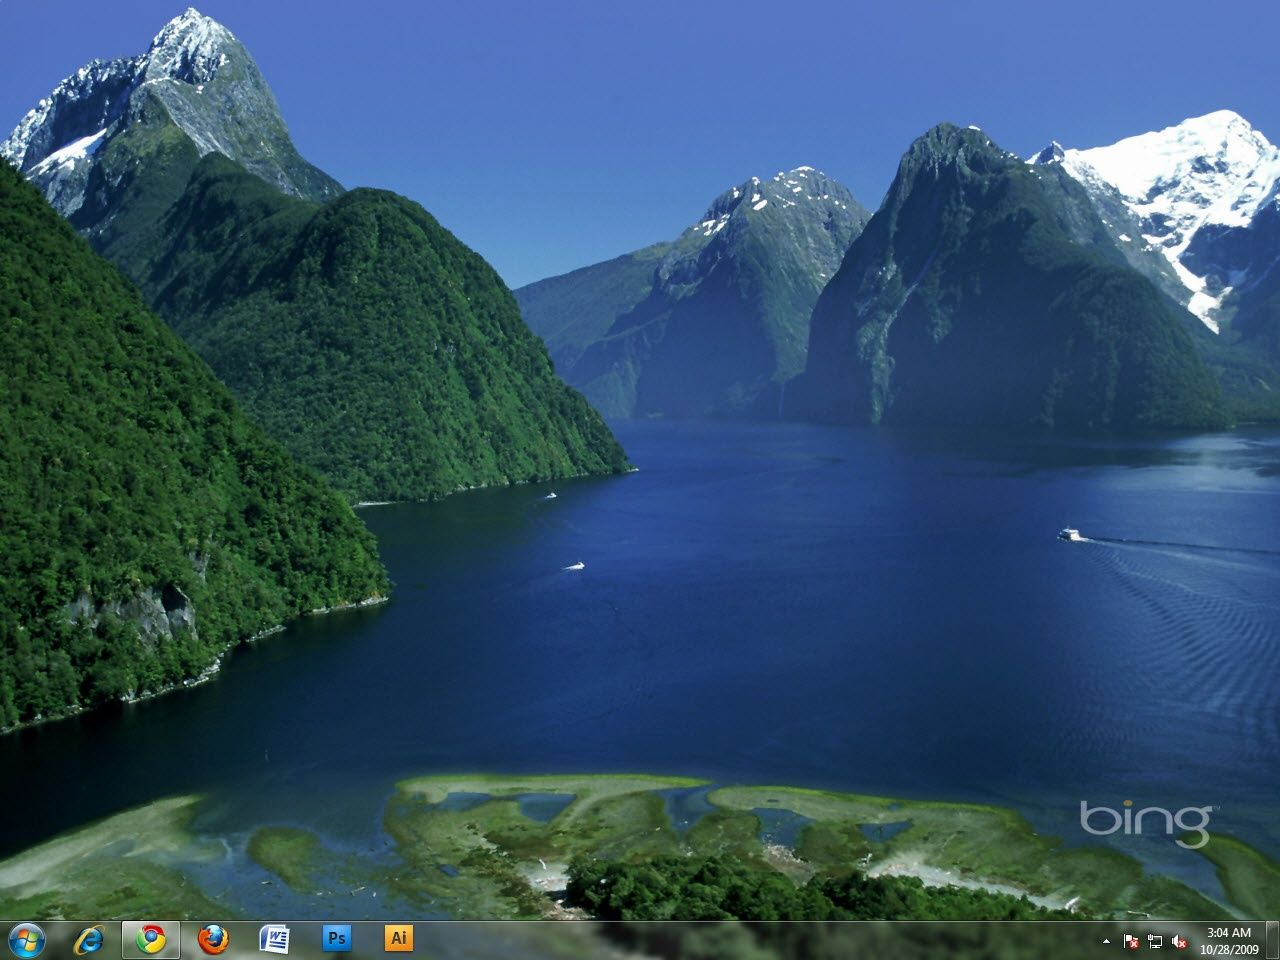 Bing Wallpaper Collection Des Download Windows 7 Theme Bing Wallpaper In High Resolution A Cool Places To Visit National Parks Beautiful Places In The World